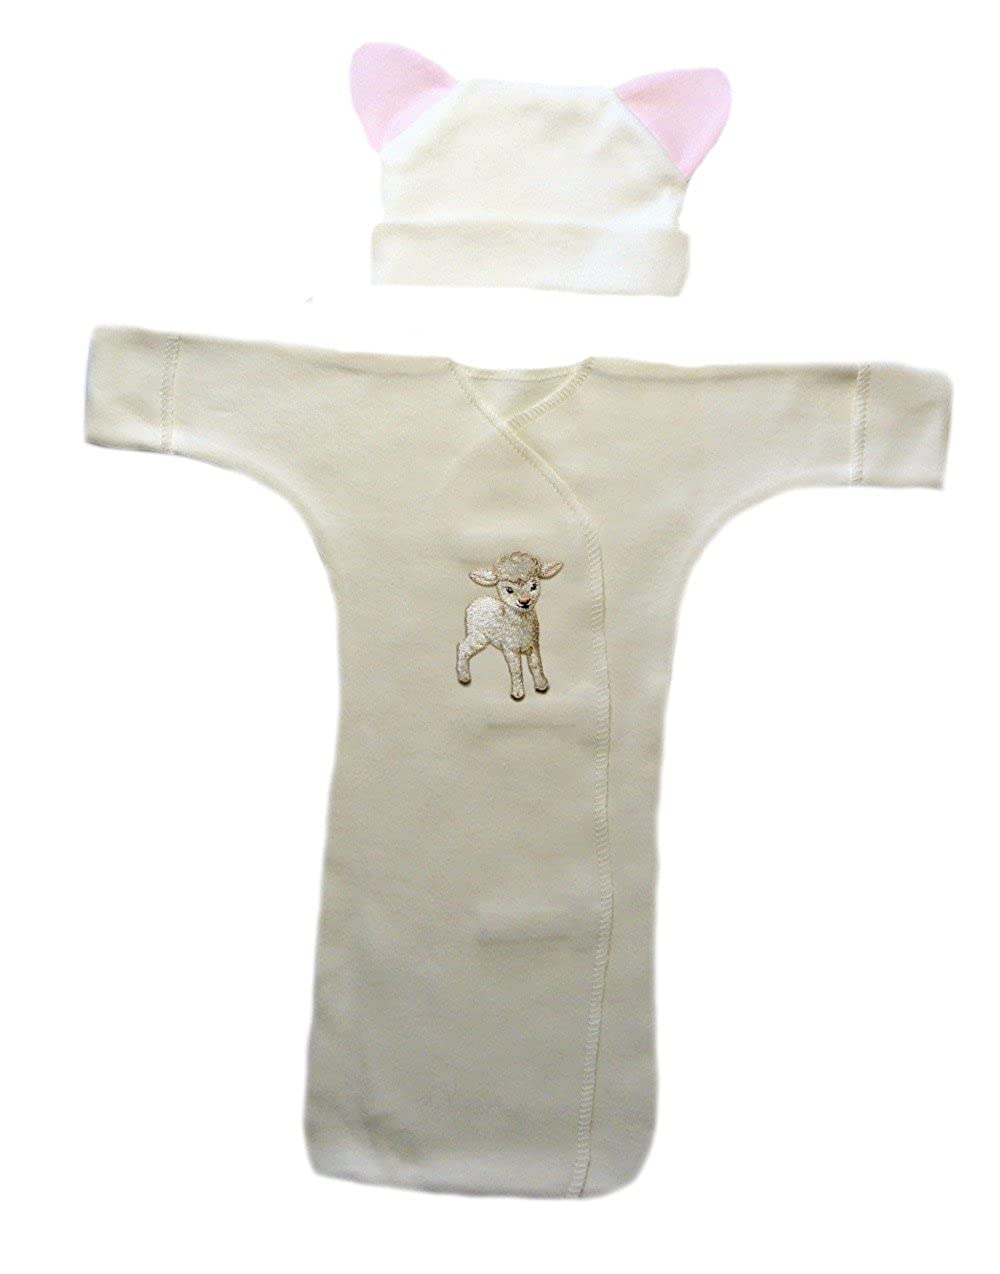 【SEAL限定商品】 Jacqui's Preemie Pride Preemie SLEEPWEAR Jacqui's ベビーボーイズ Small Pride Preemie for Babies 3-6 Pounds B00CW038LY, ASUKA Records アスカレコード:54a940e2 --- a0267596.xsph.ru